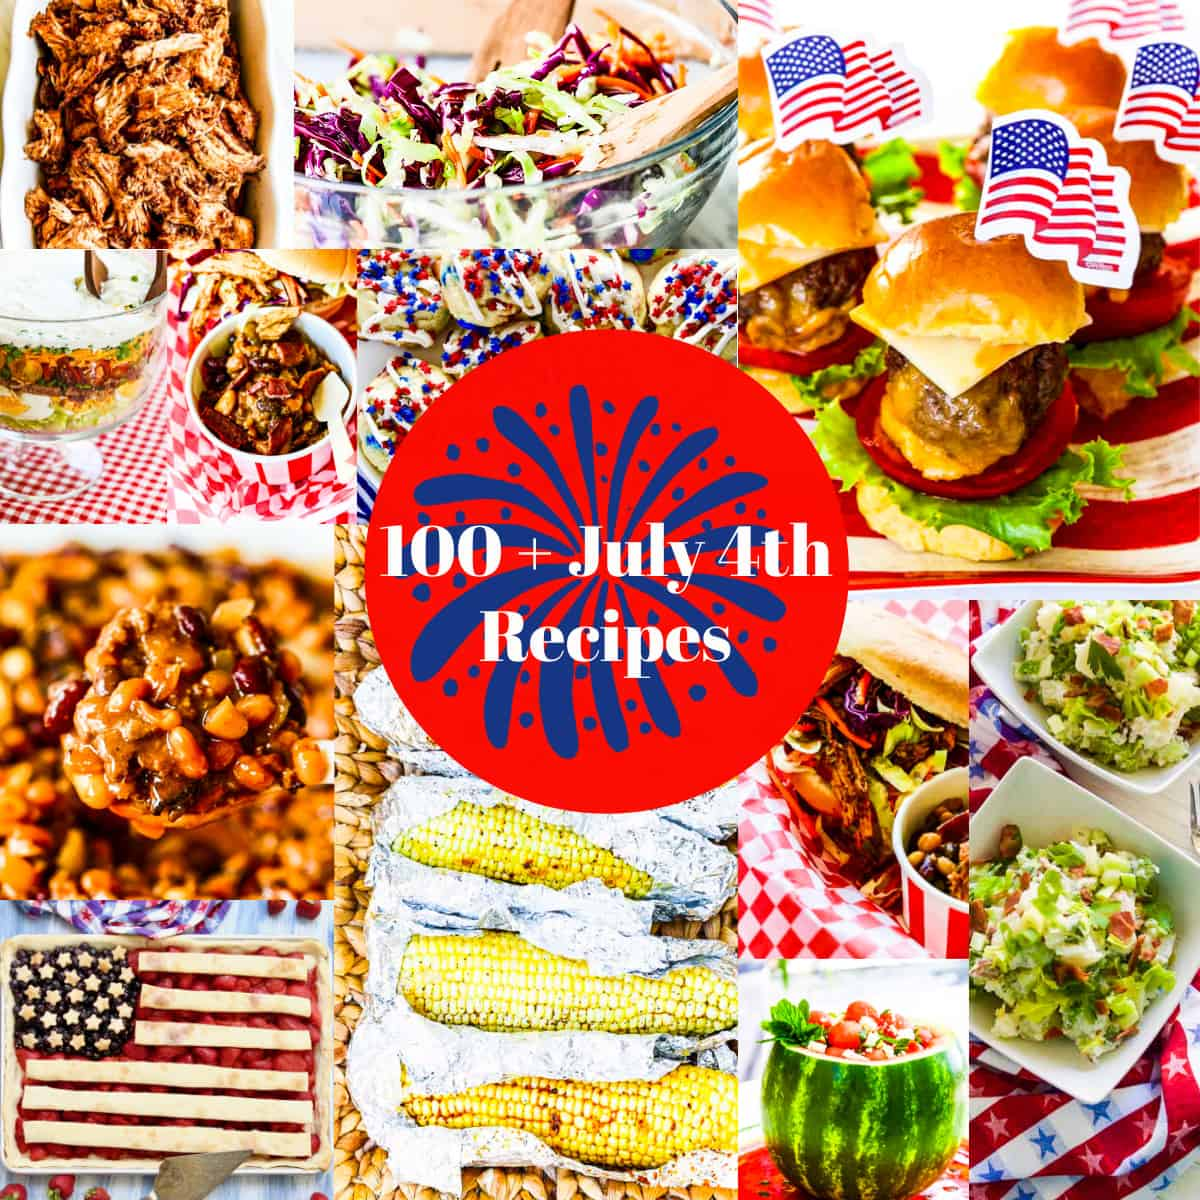 A collage of recipes to make for July 4th including baked beans, grilled corn, flag pie and more.